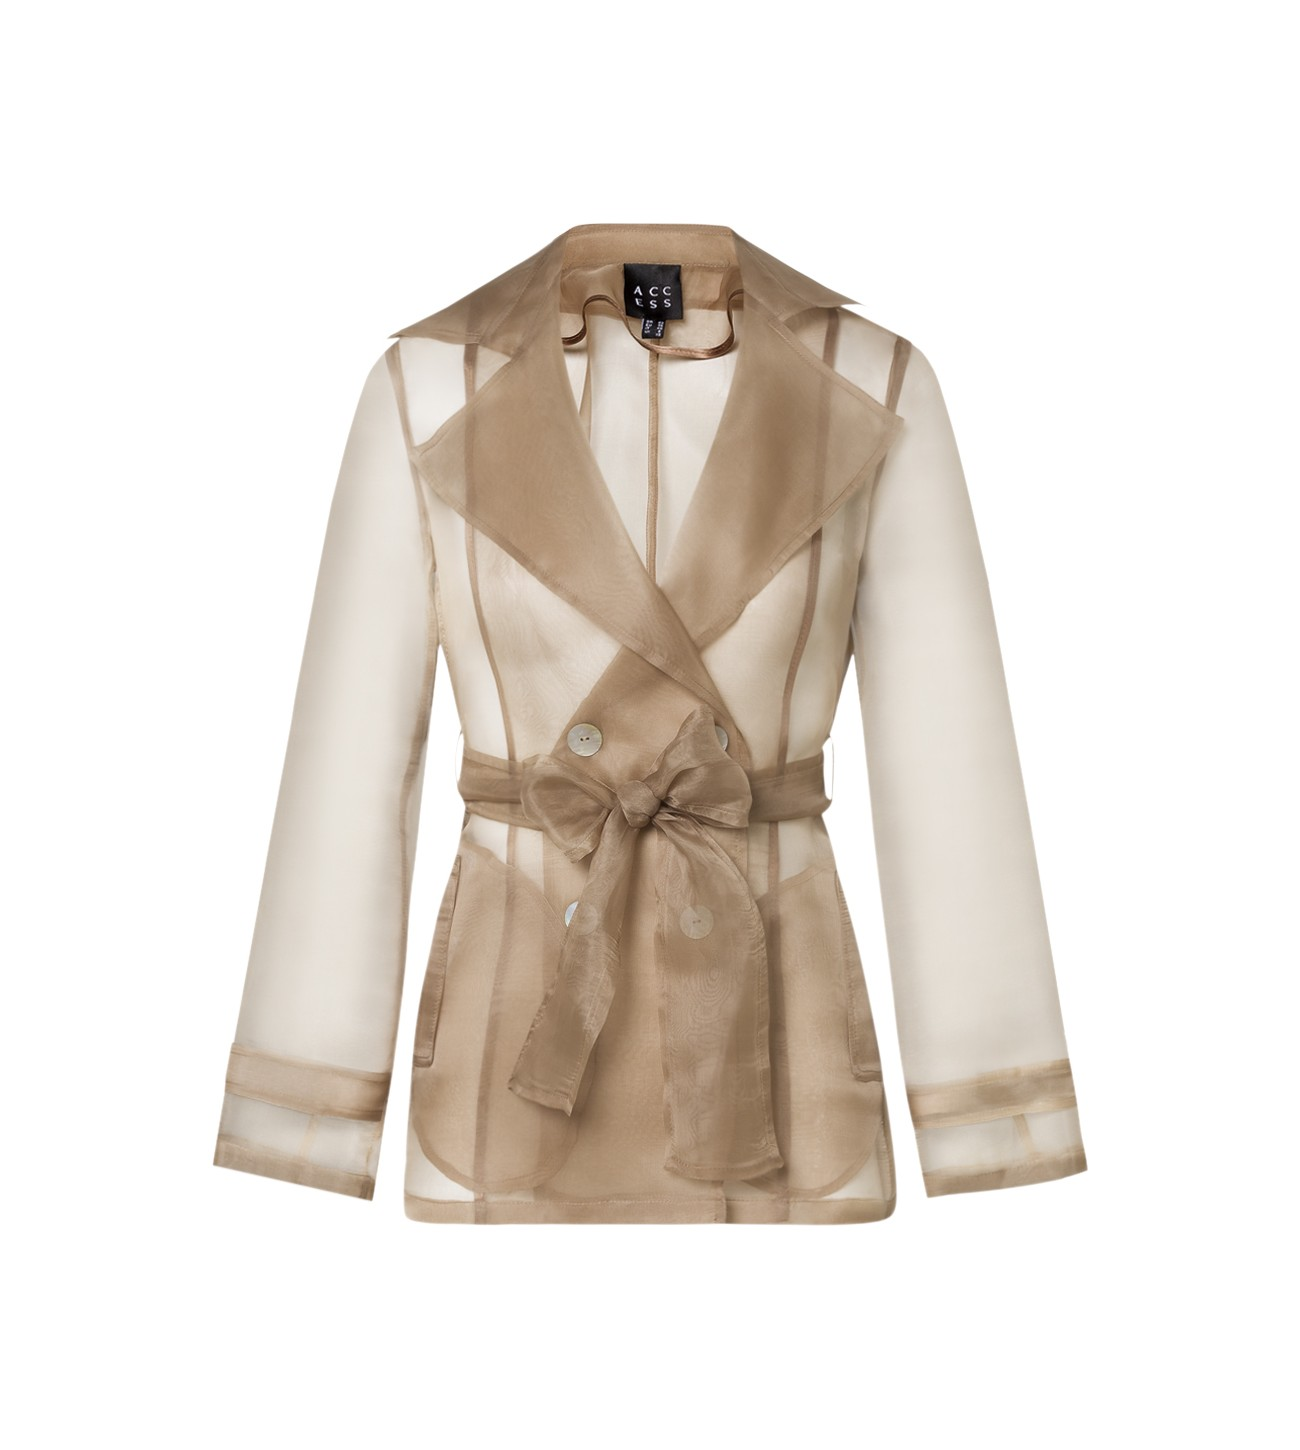 ACCESS_ORGANZA_JACKET_MARIONA_FASHION_CLOTHING_WOMAN_SHOP_ONLINE_19-1035-173